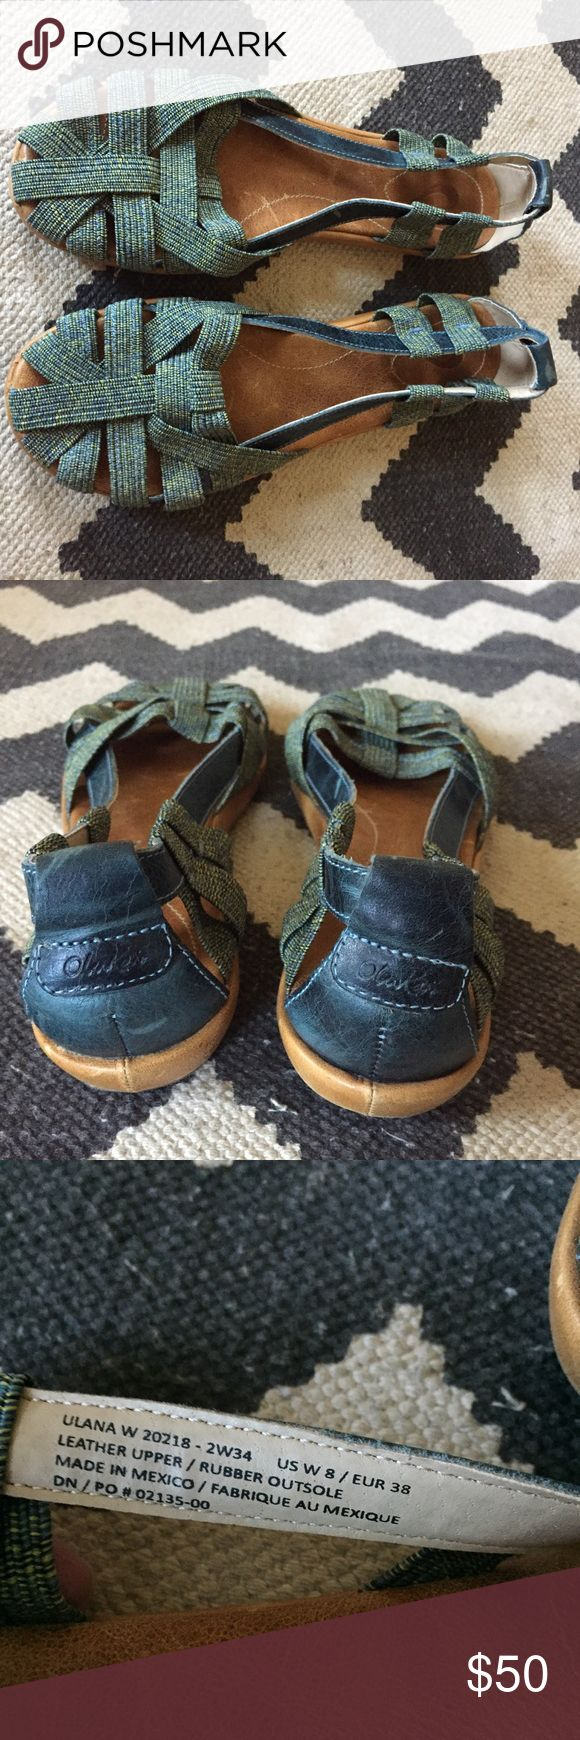 Olukai sandals Perfect condition worn a few times but were just a little small for me. True to size. Size 8 last picture shows an eBay price to compare. OluKai Shoes Flats & Loafers